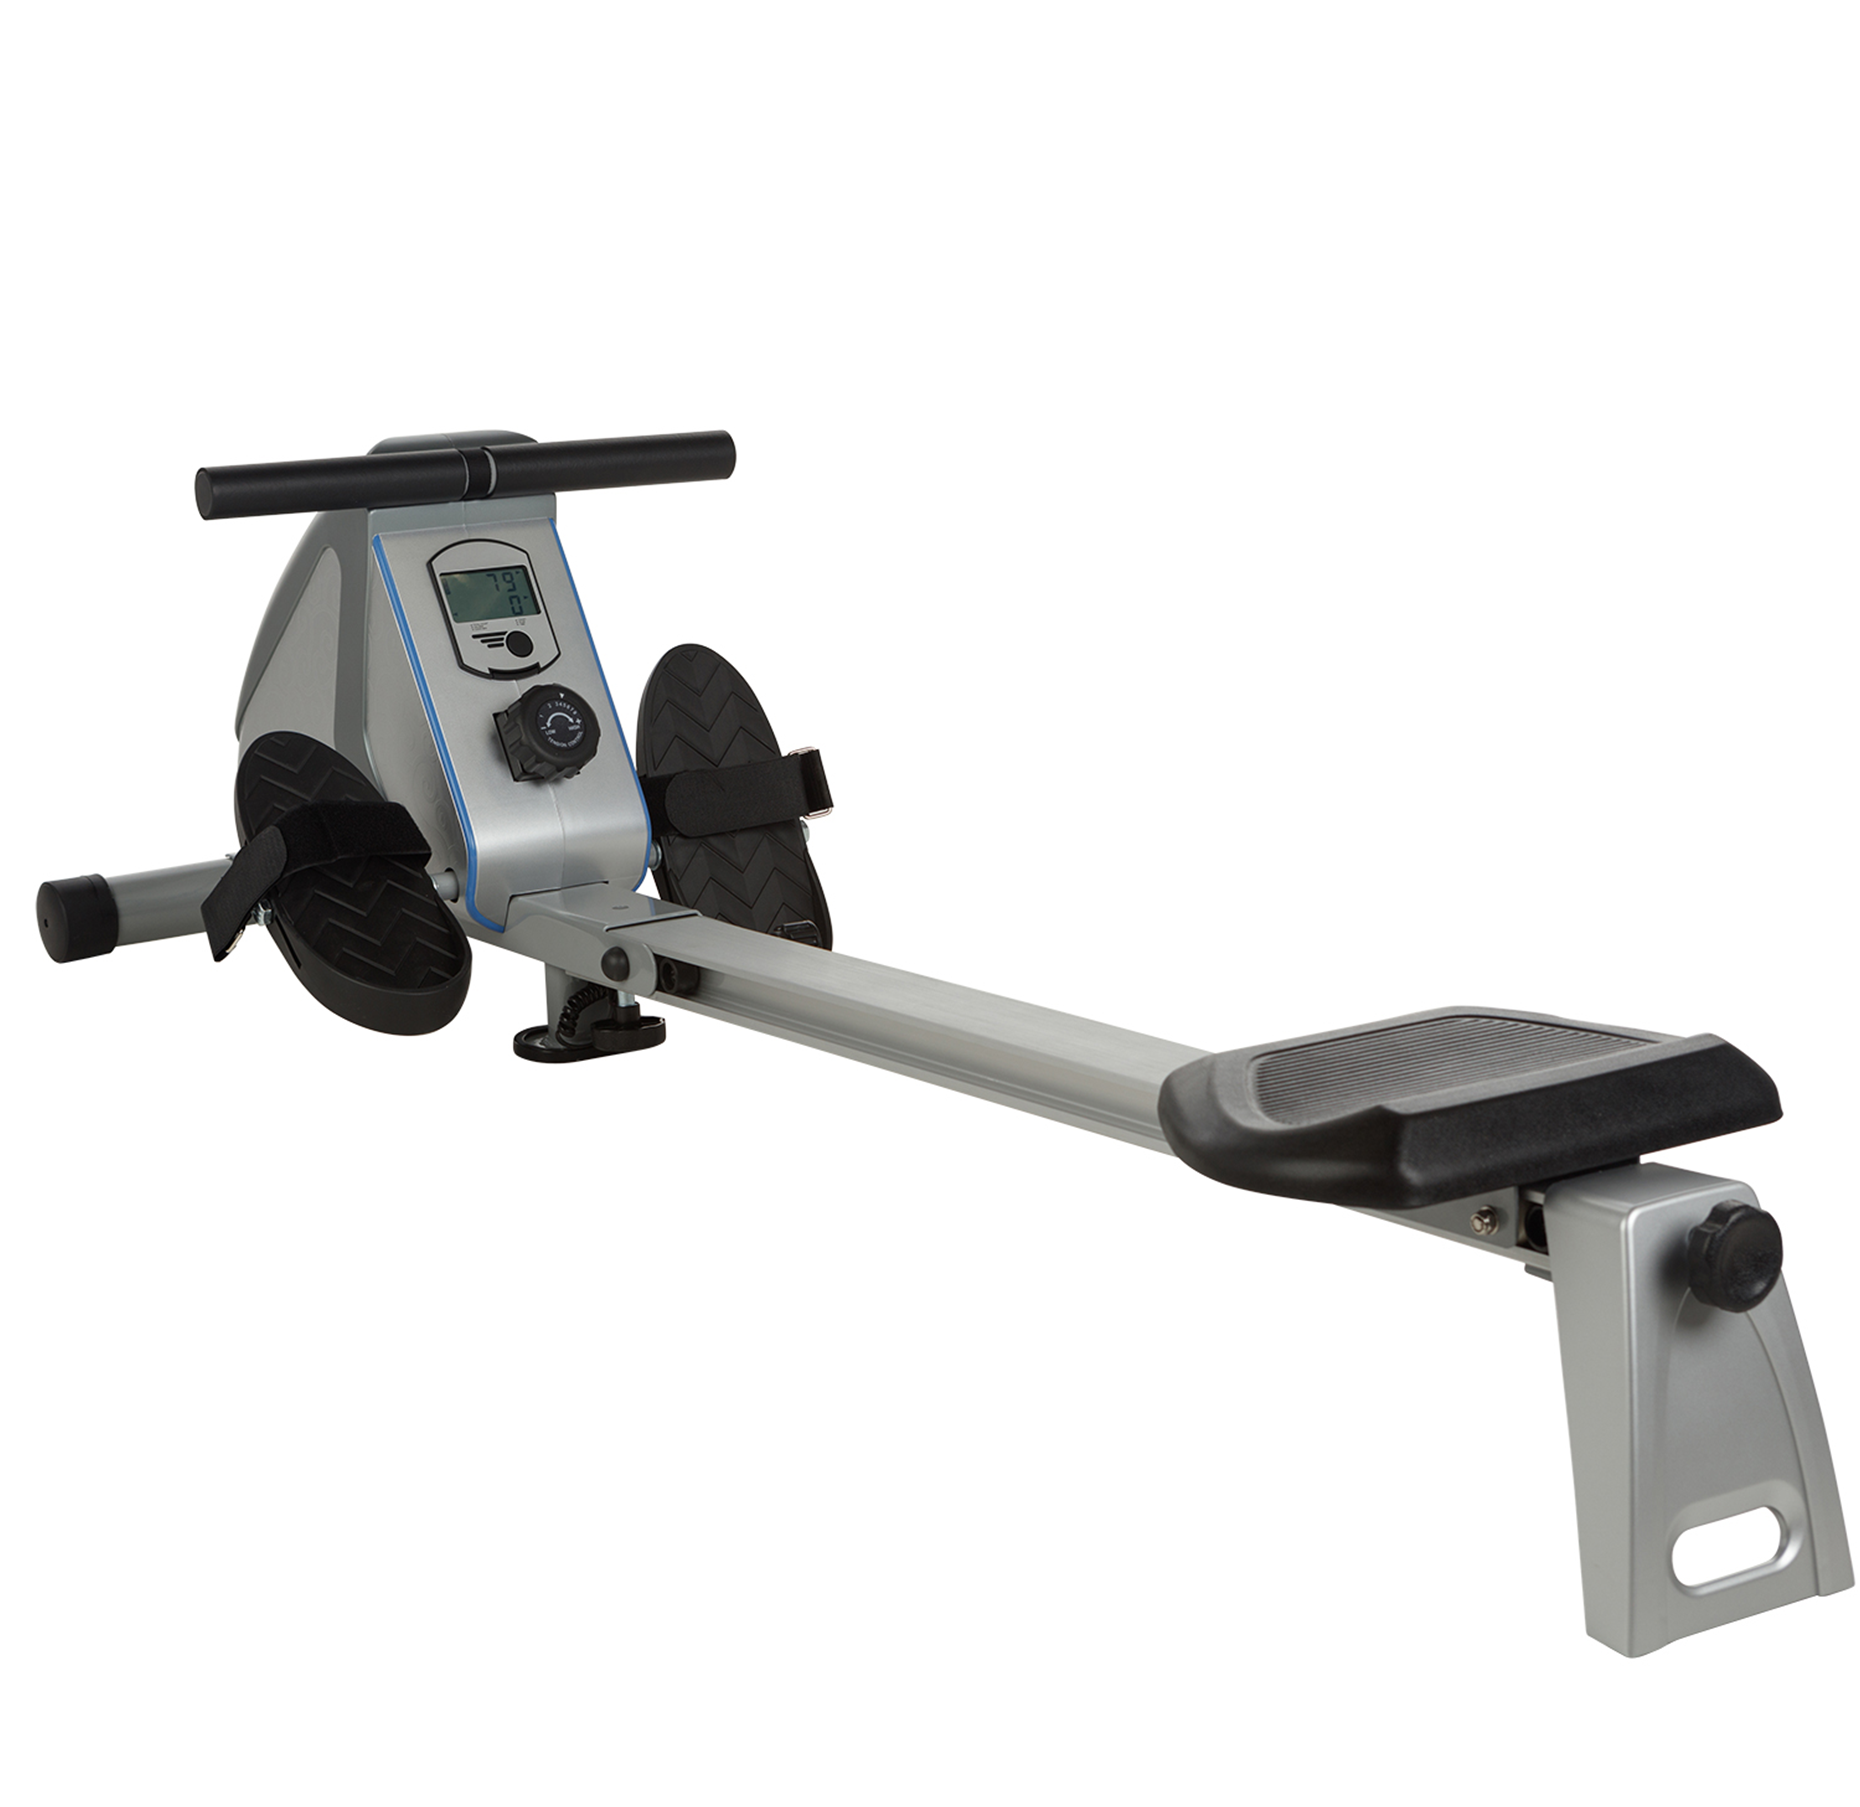 Rutherford Fitness | Rowing machines - Hire and buy